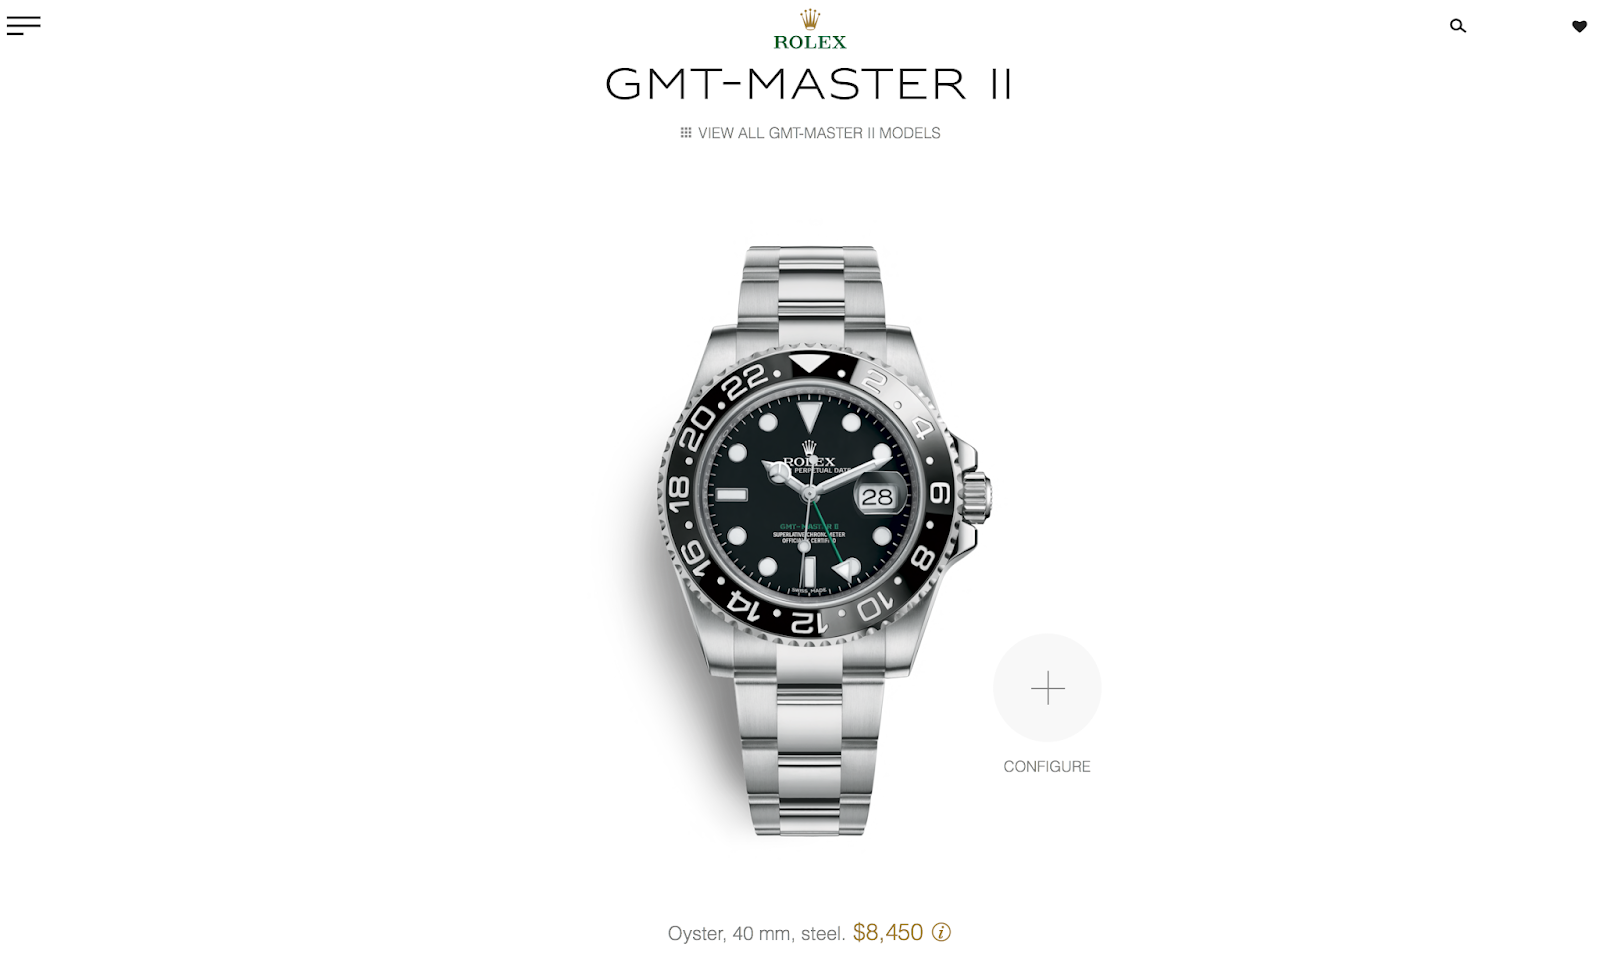 C-segment Wrist Watches: SOLD : LNIB Rolex GMT-Master ii